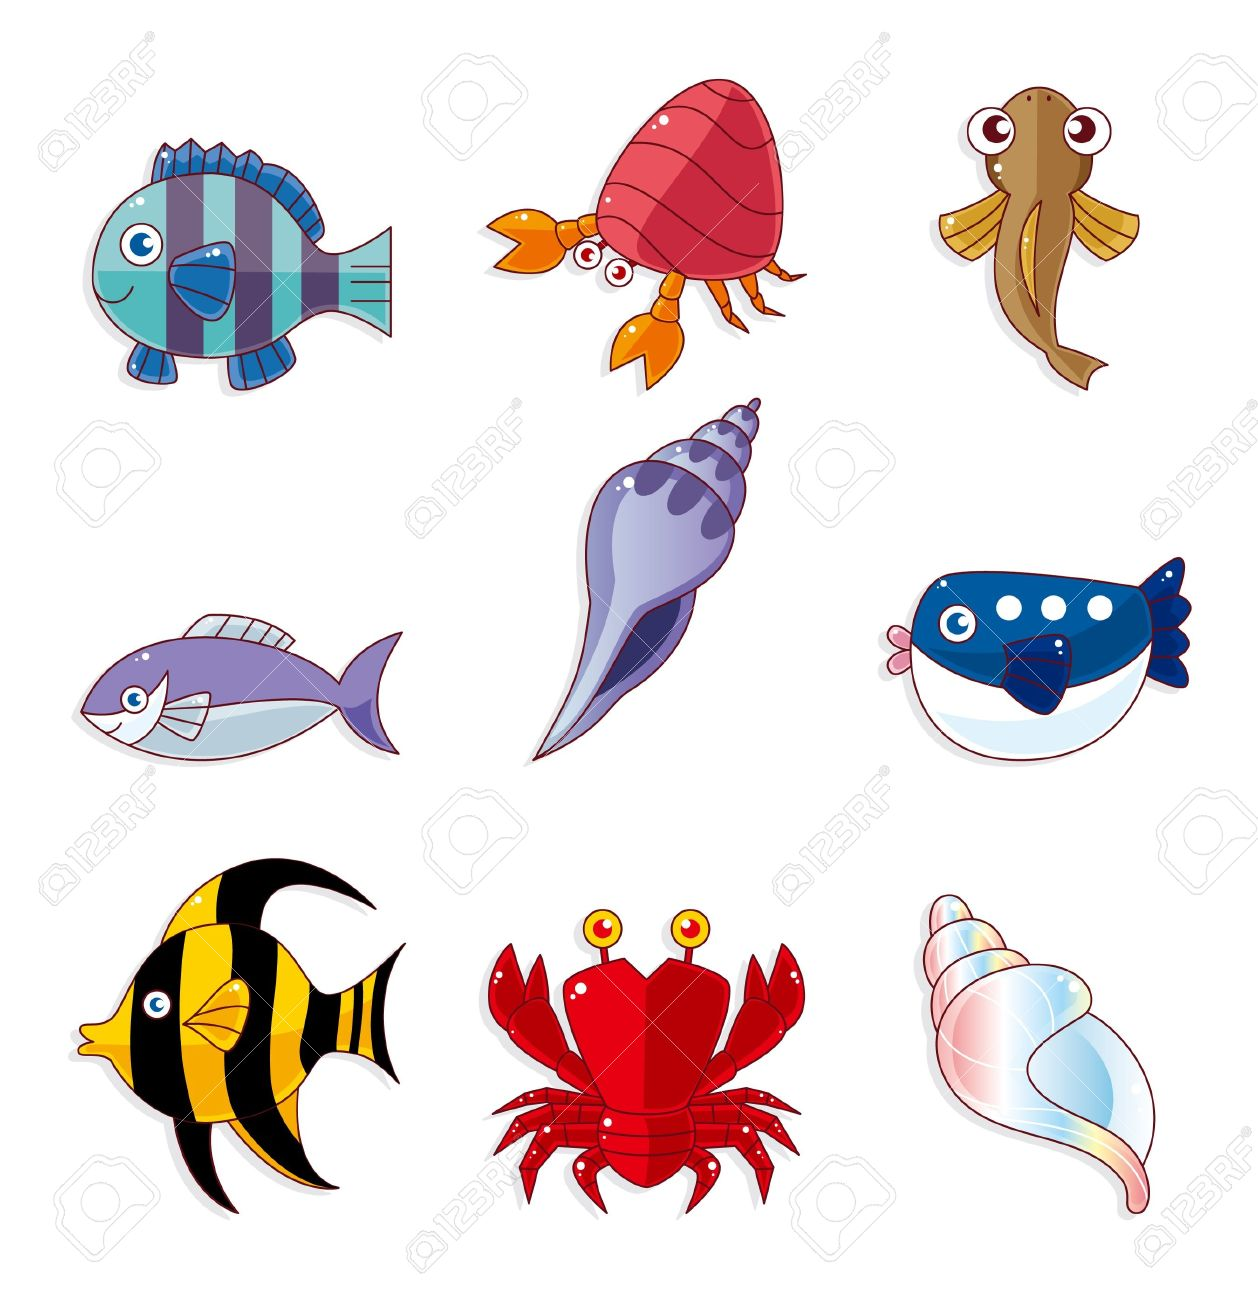 Tail fin clipart #10